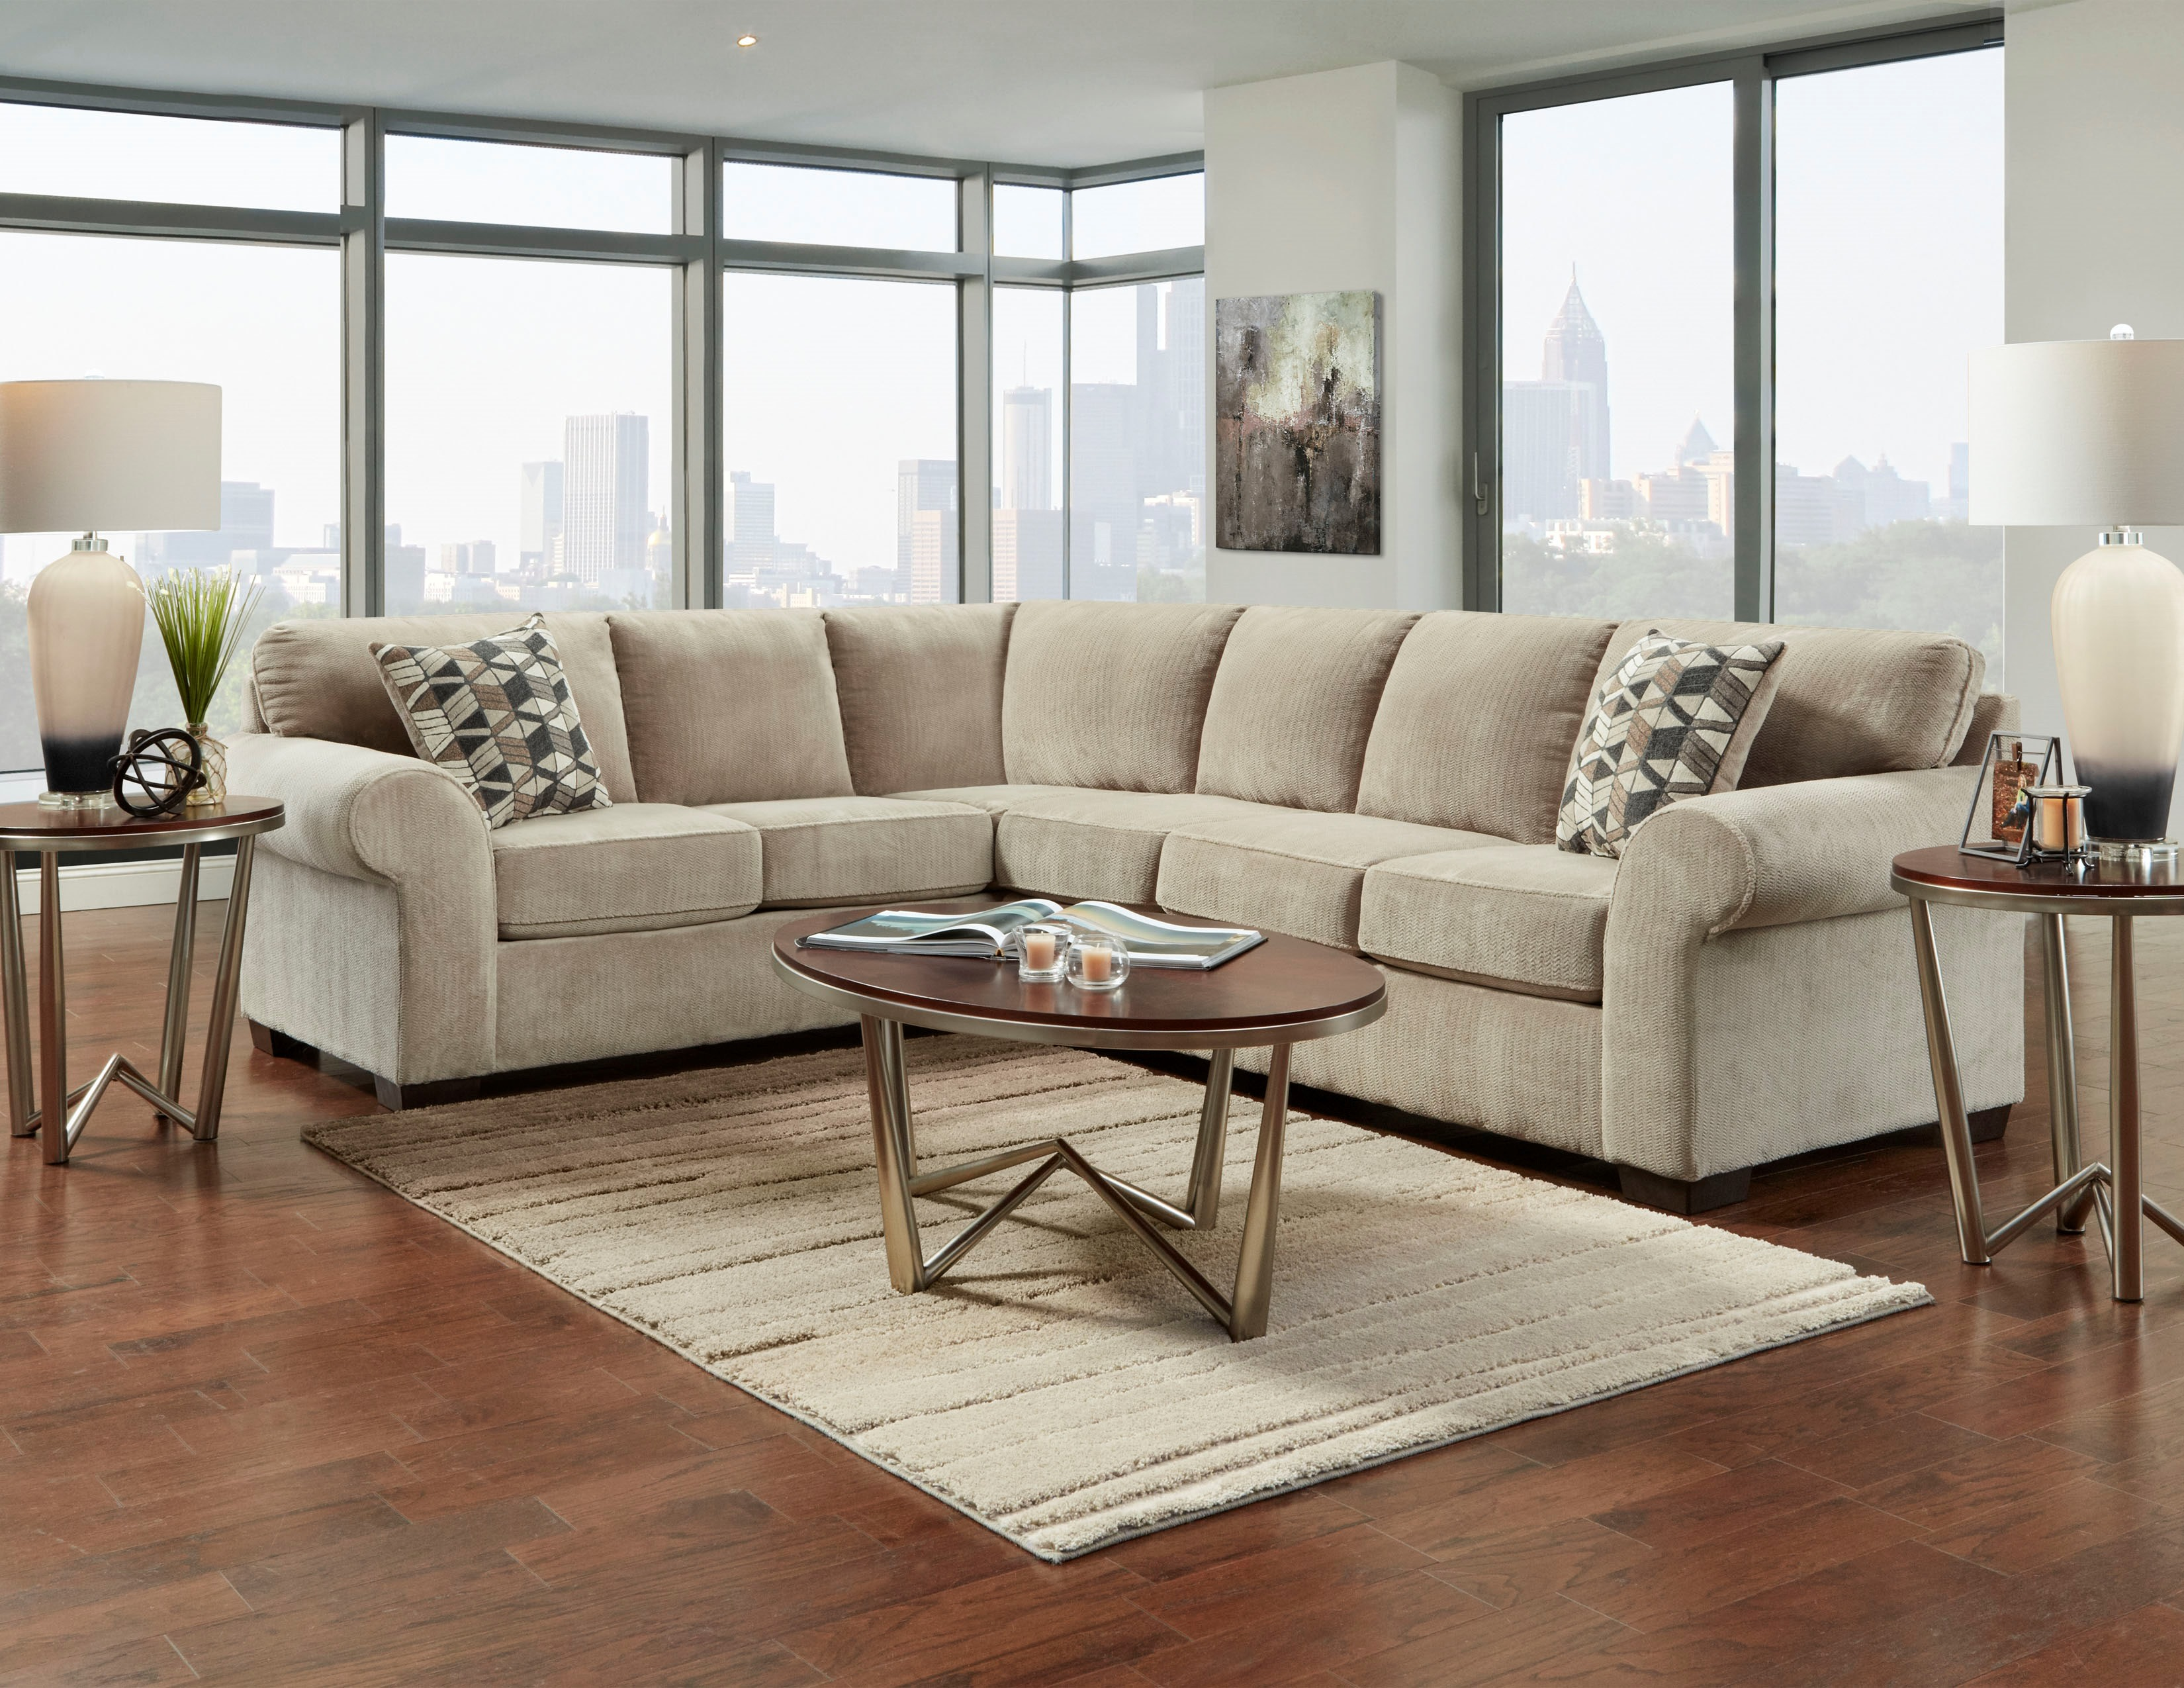 Chevron Sectional Collection American Freight Sears Outlet